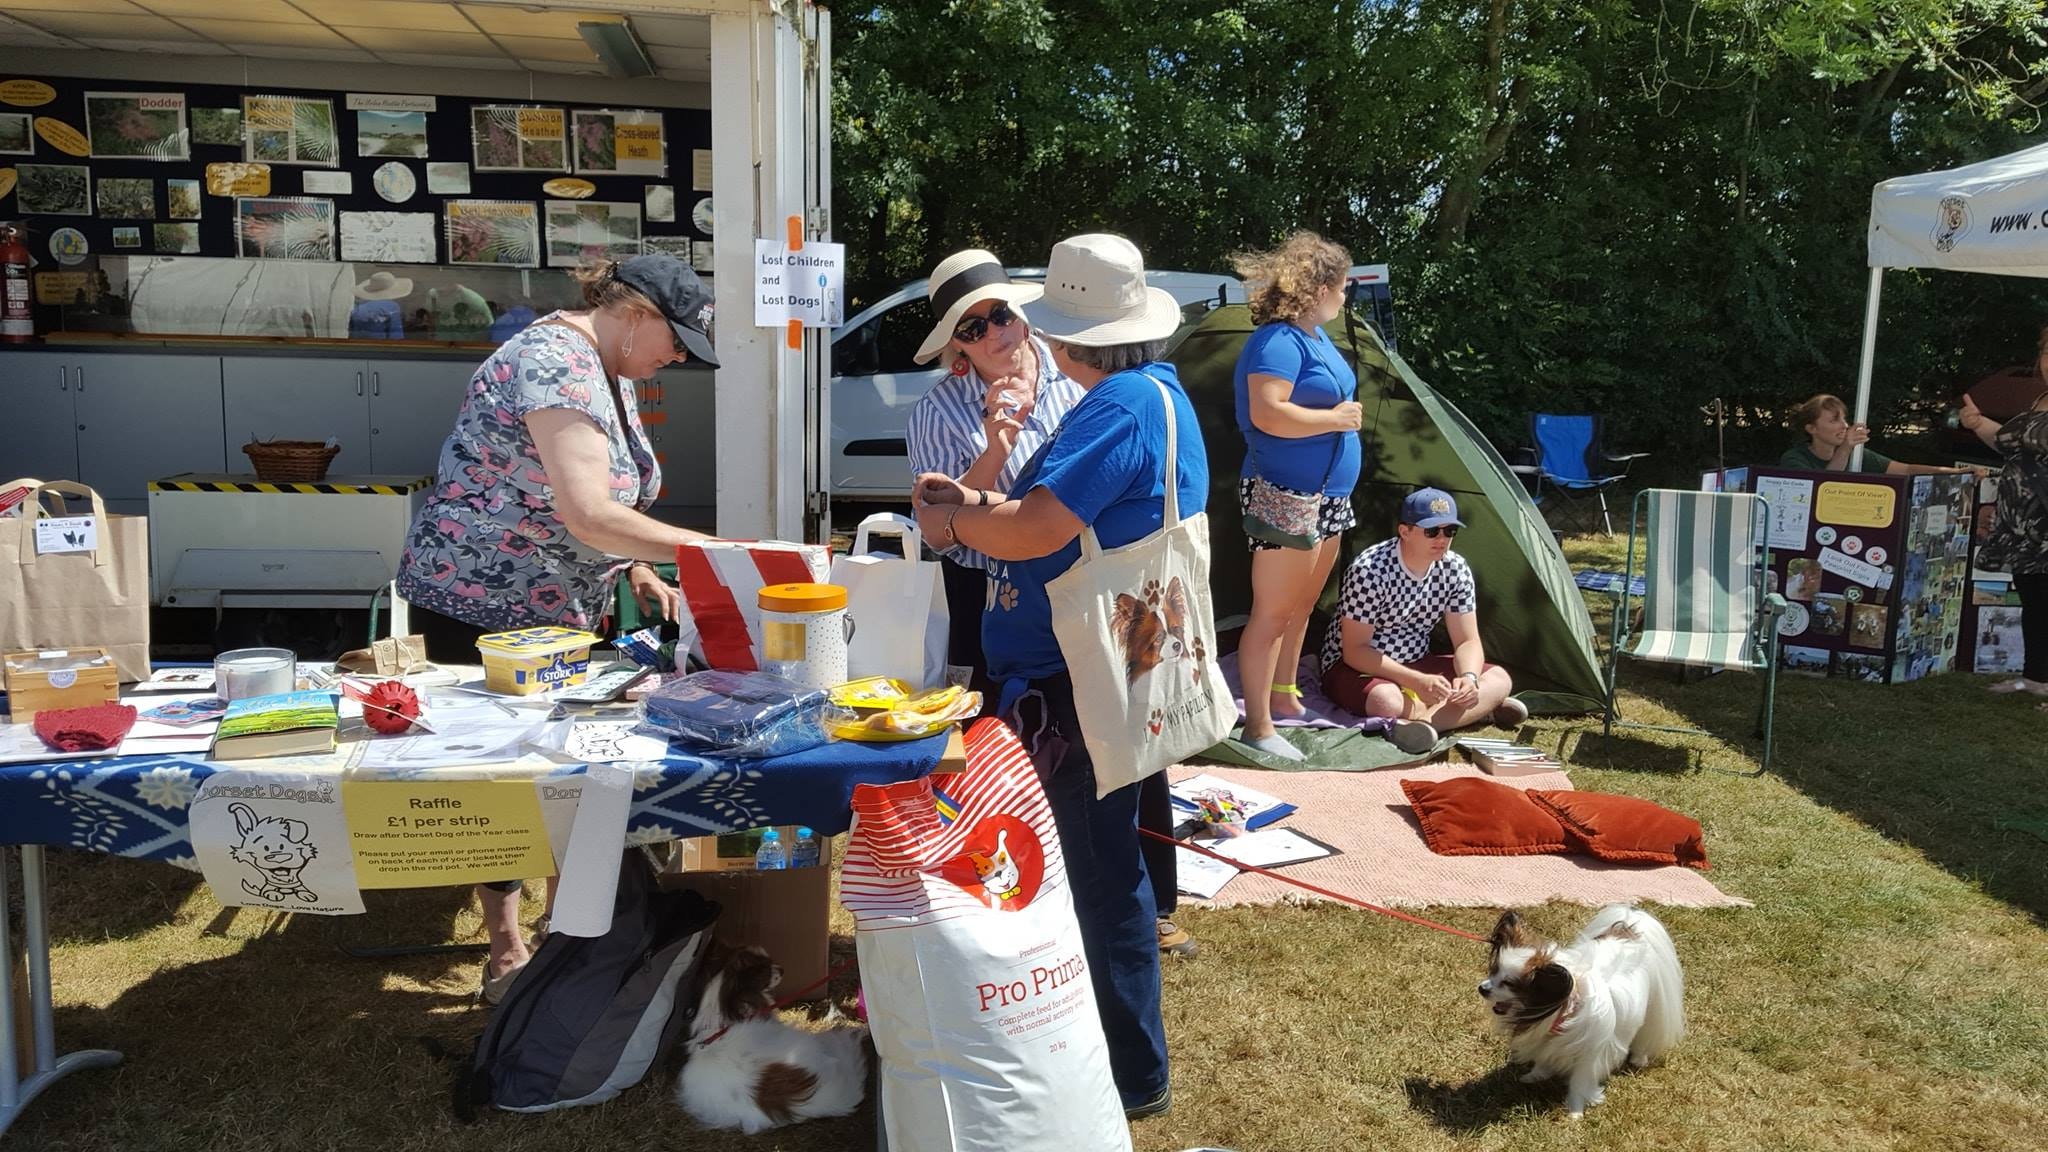 More volunteers at work at the Dorset Dogs Festival, on the raffle table and at a children's tent.